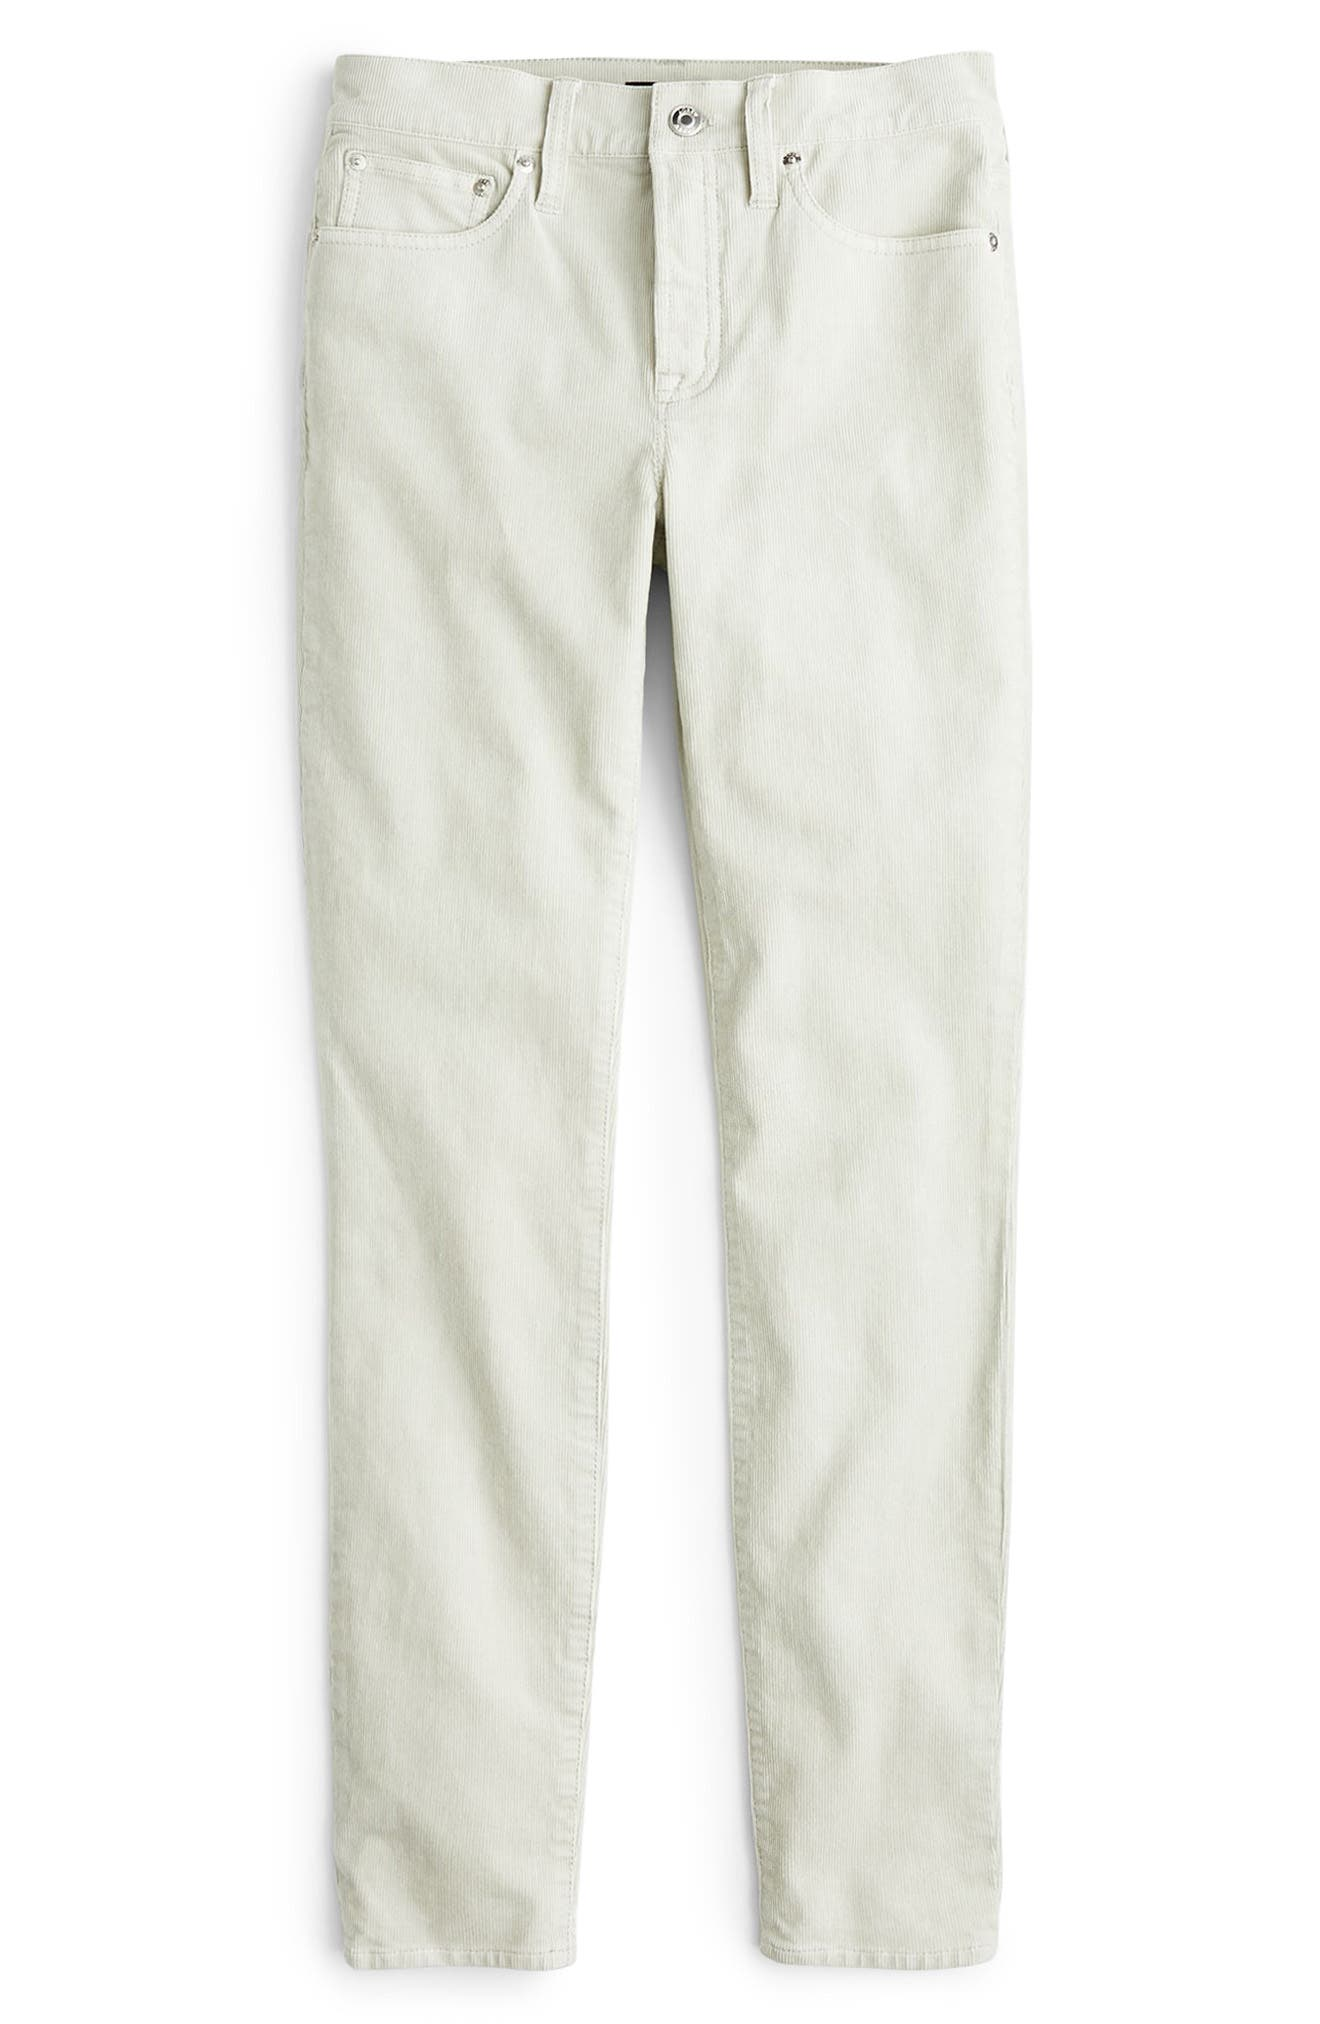 High Rise Toothpick Corduroy Jeans in Stone